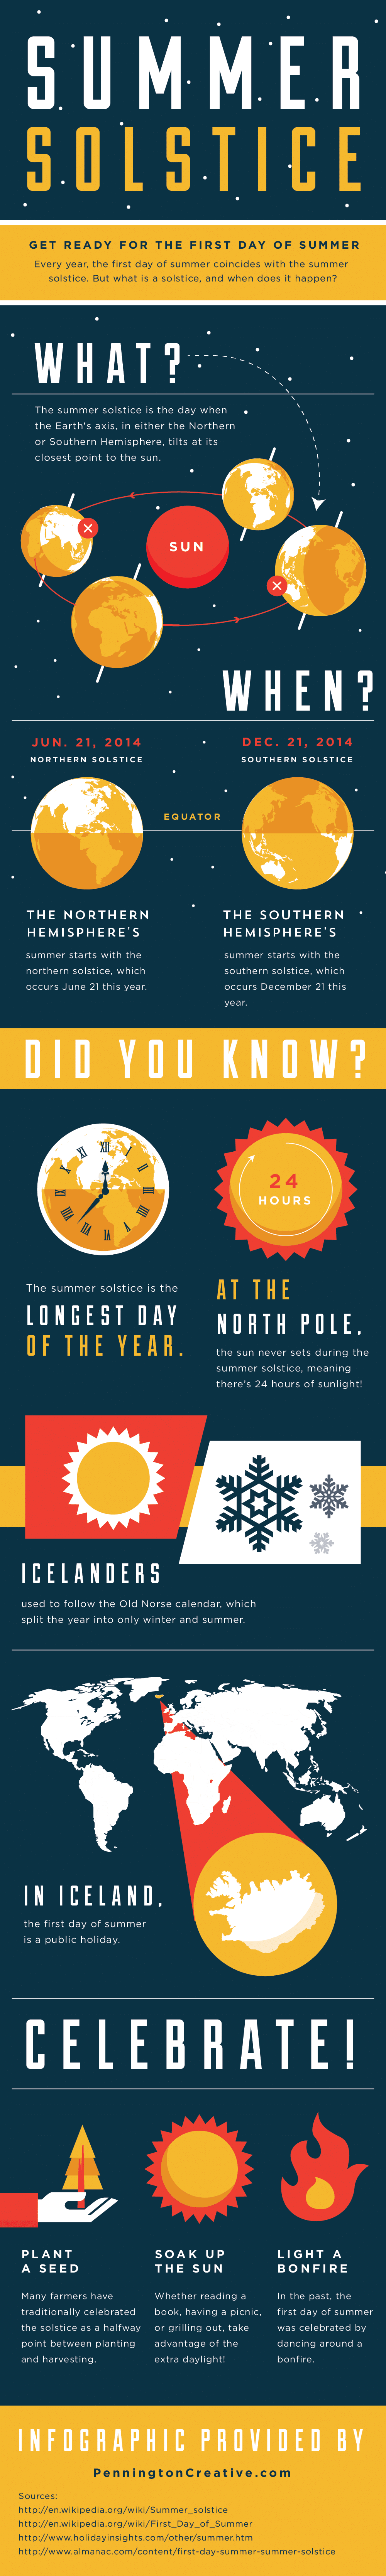 Summer Solstice Infographic